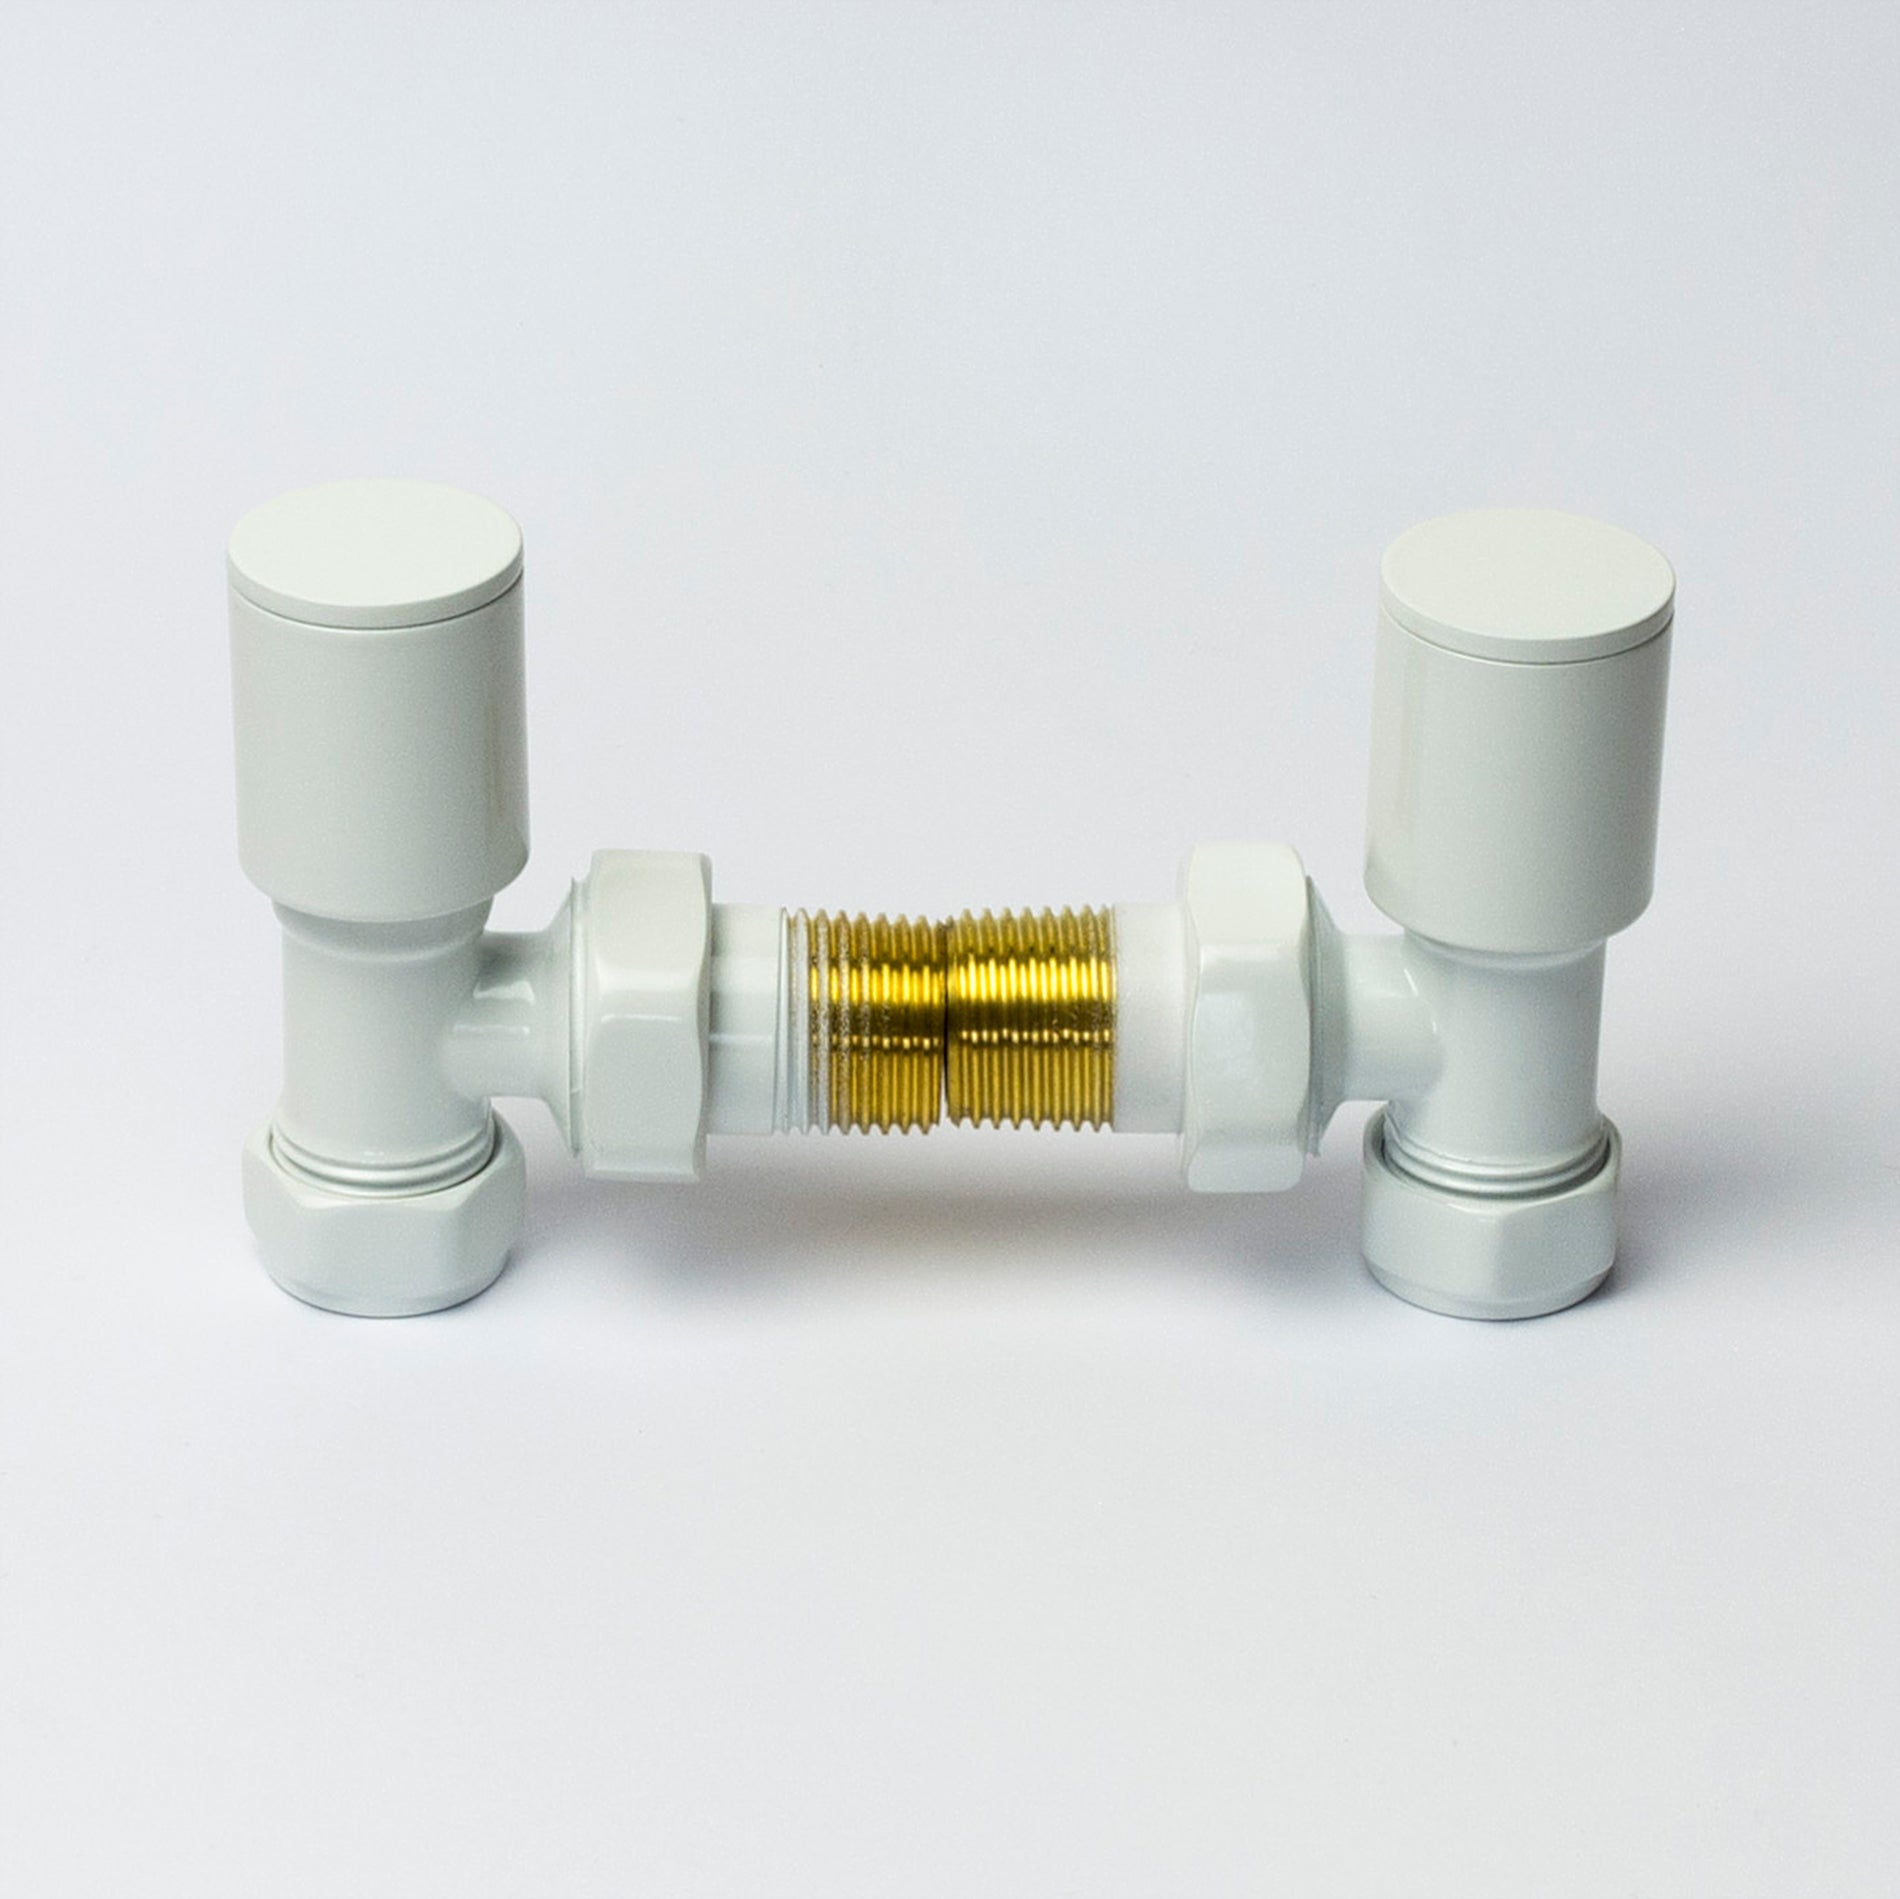 White Manual Towel Rail Angled Valves For Dual Fuel Towel Rail